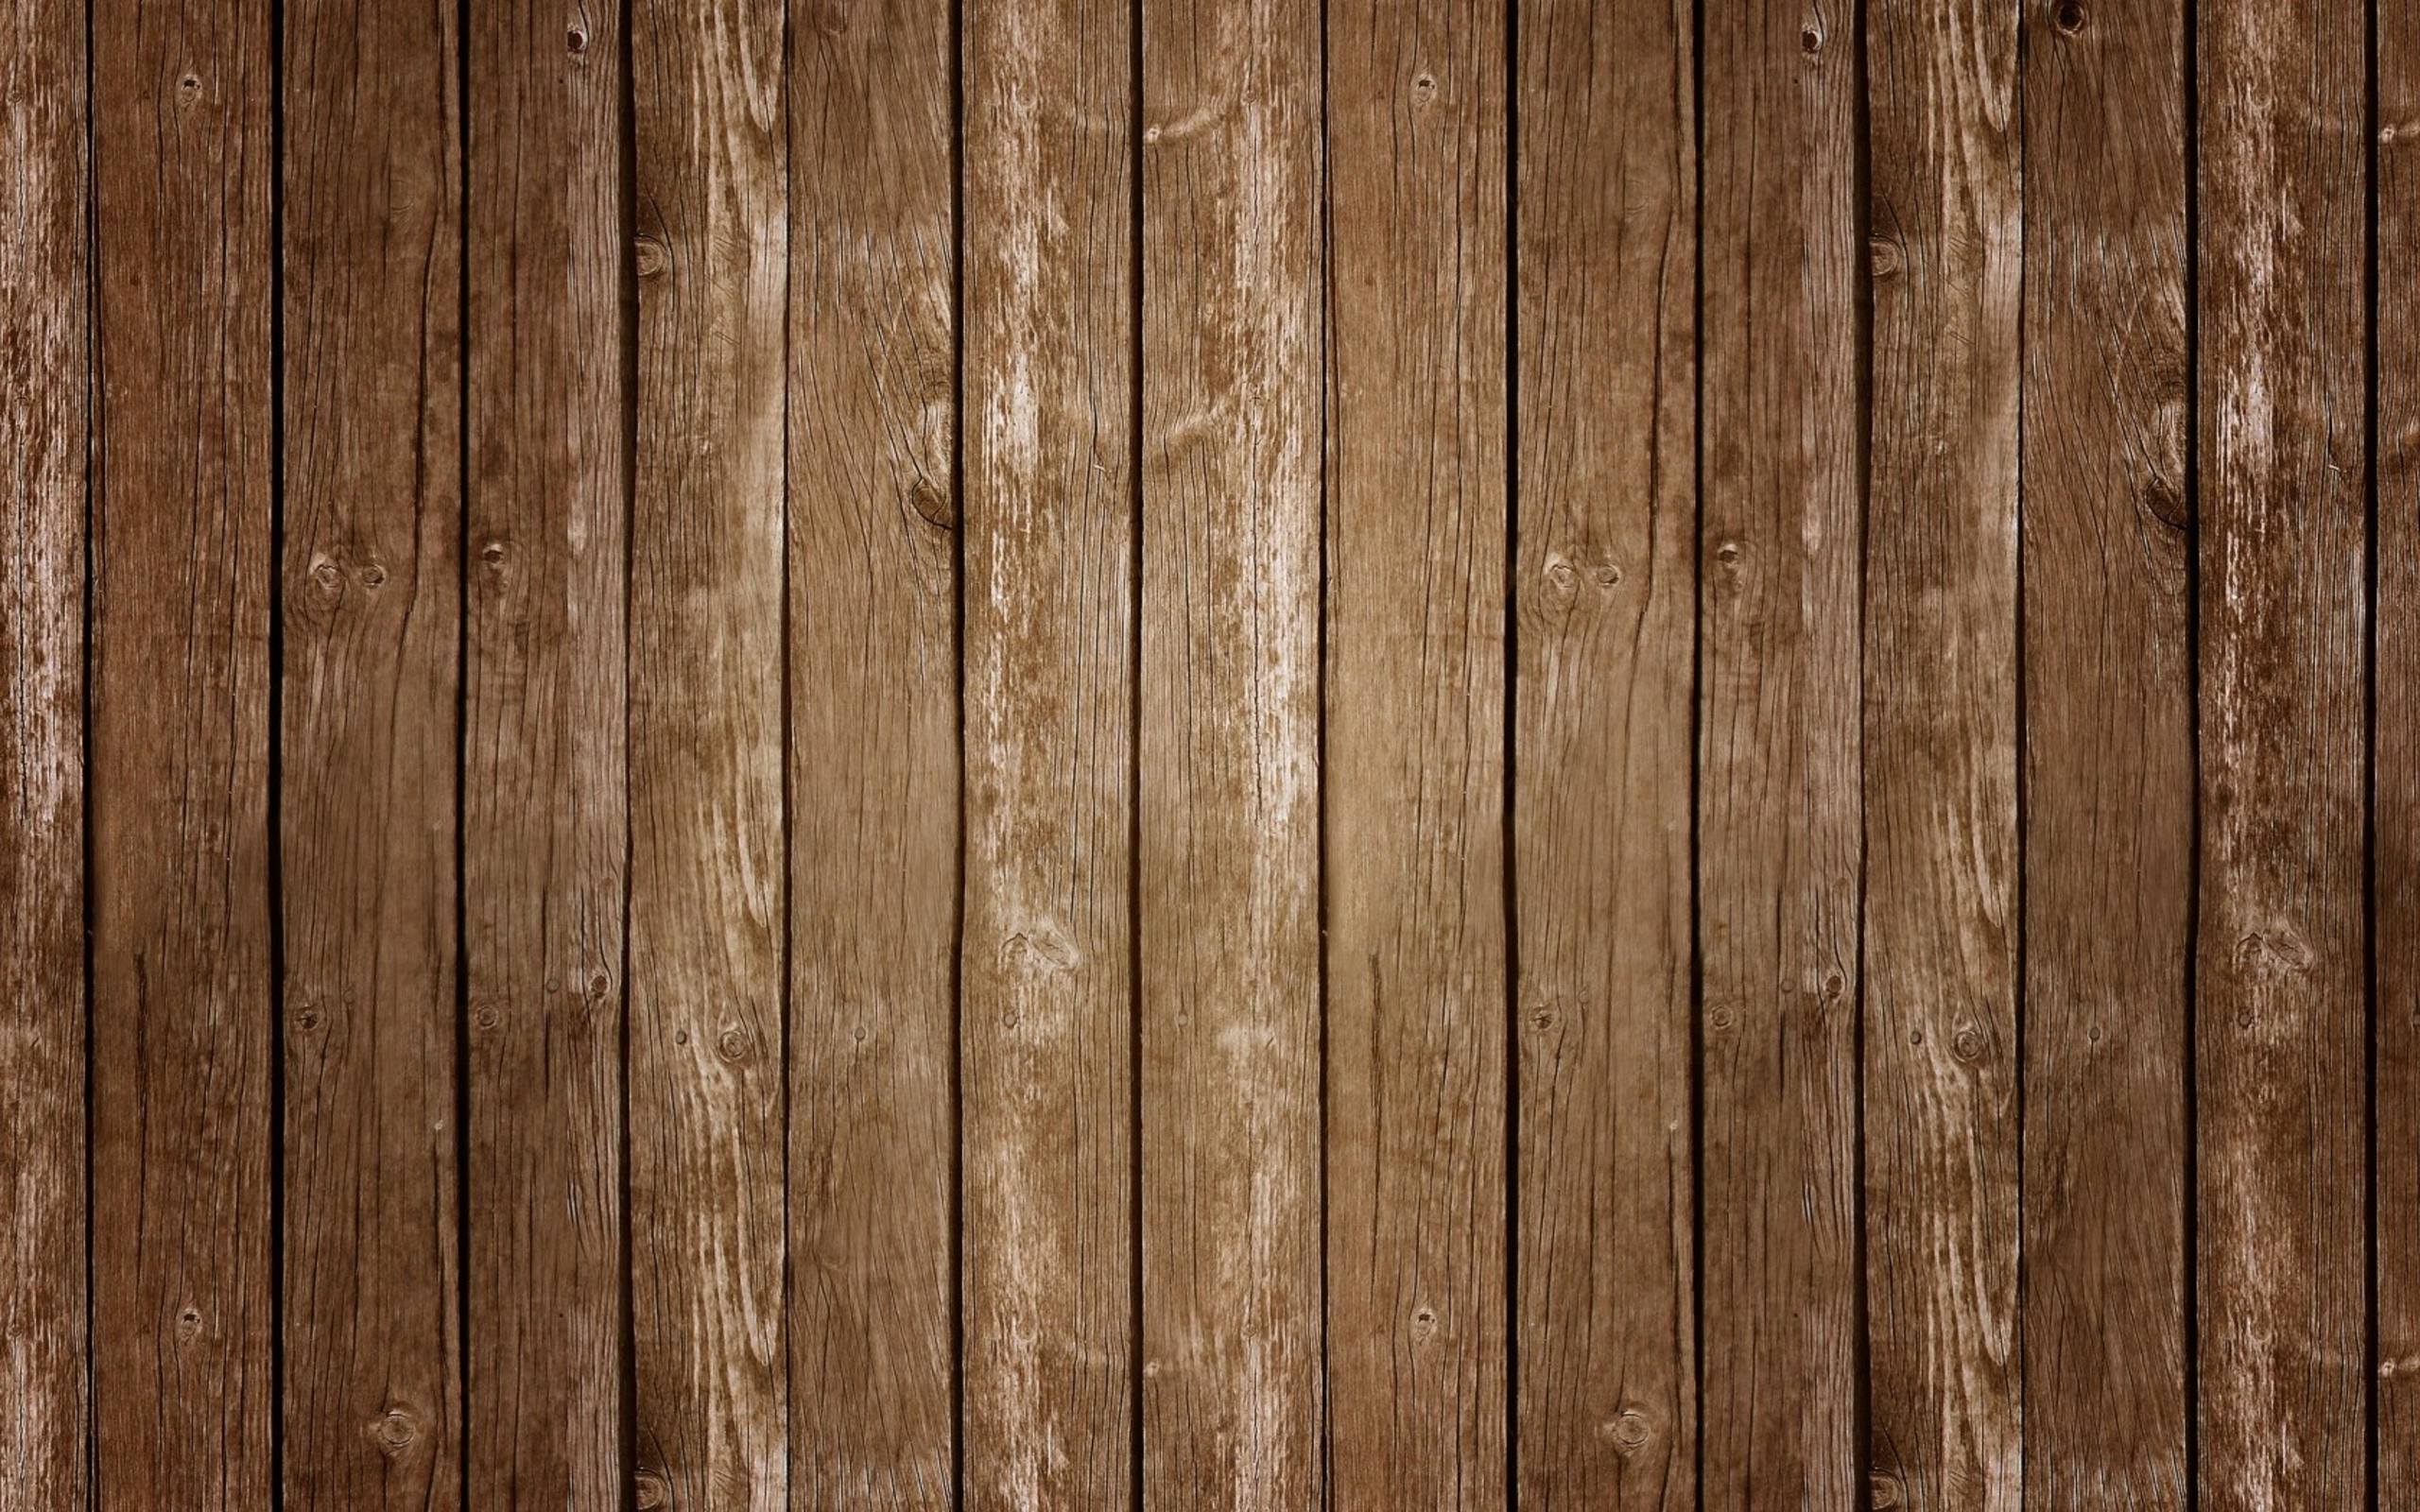 Wooden Desktop Wood Timber Closeup Wooden Surface Texture Wallpapers